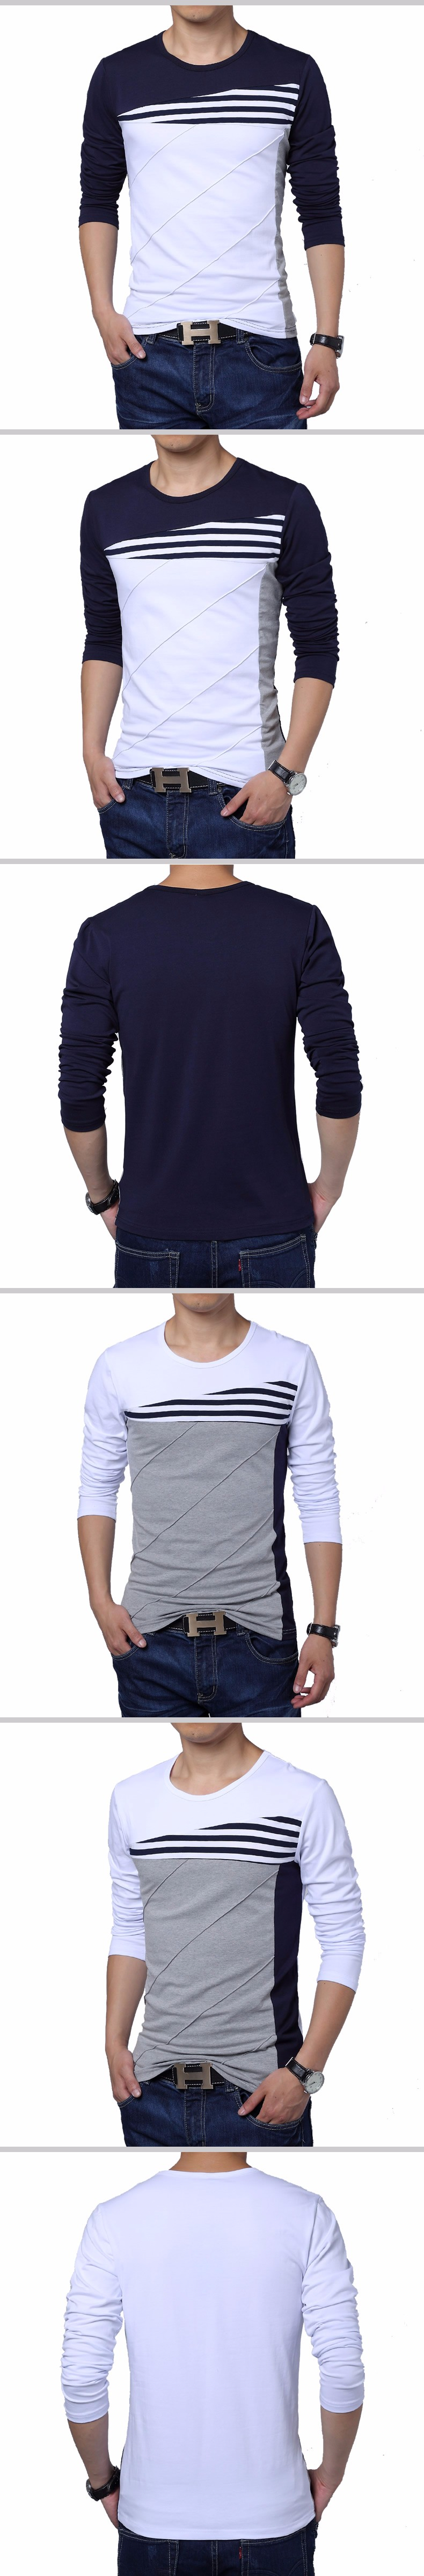 Hot-Sale-2017-New-Fashion-Brand-O-Neck-Trend-Long-Sleeve-T-Shirts-Men-Slim-Fit-Cotton-High-quality-C-32326038345